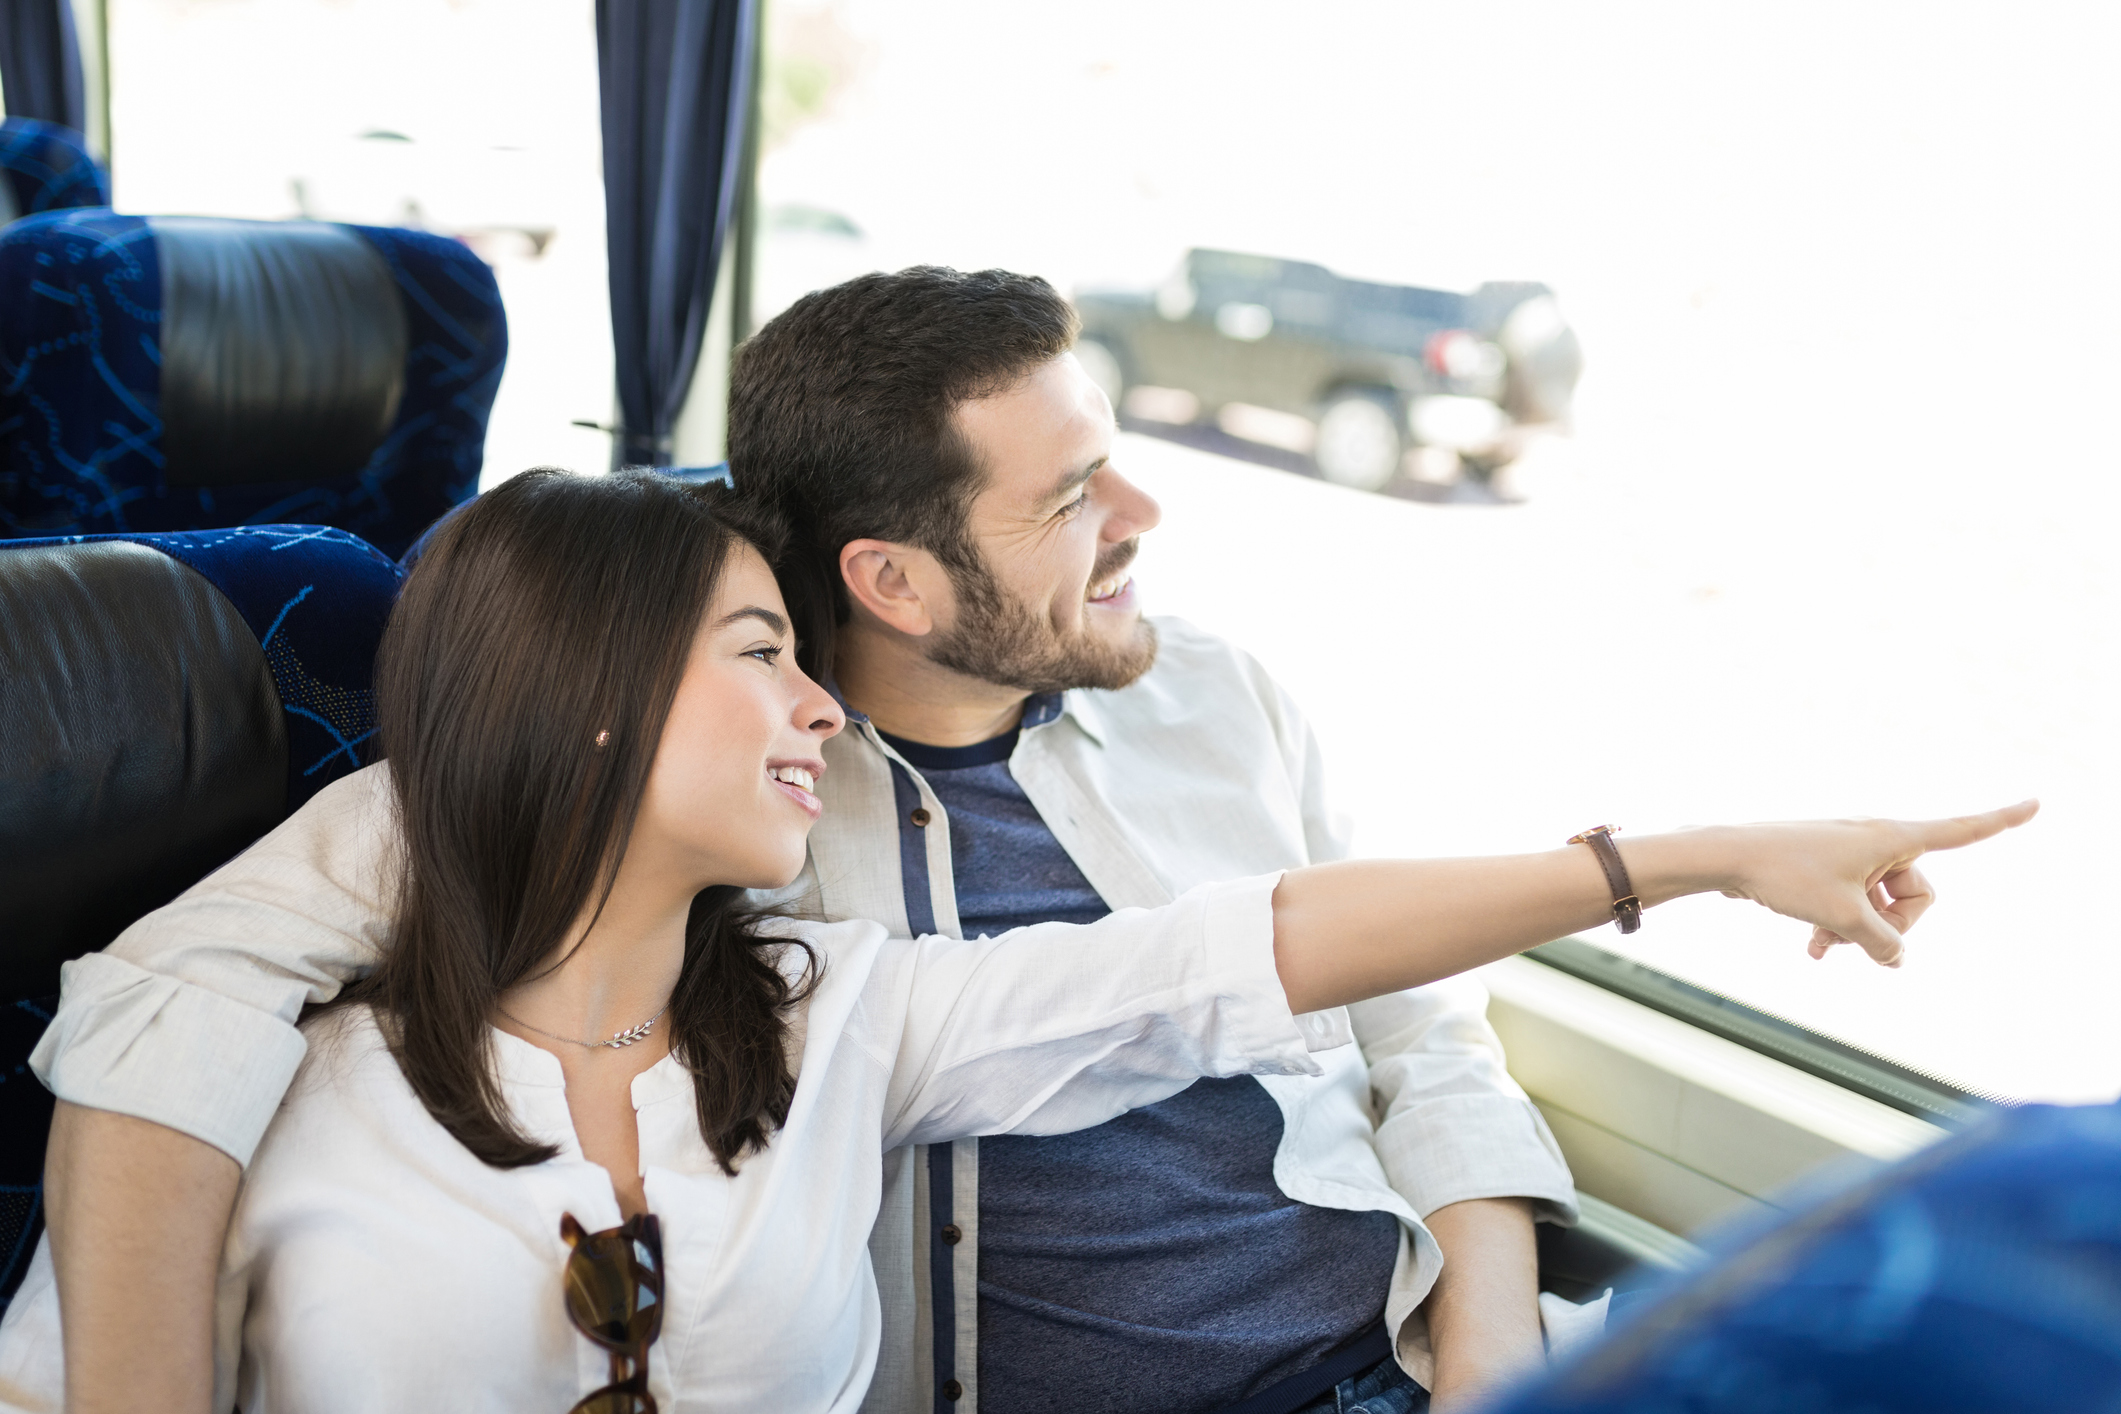 Young couple on a bus smiling and looking at something through the window.